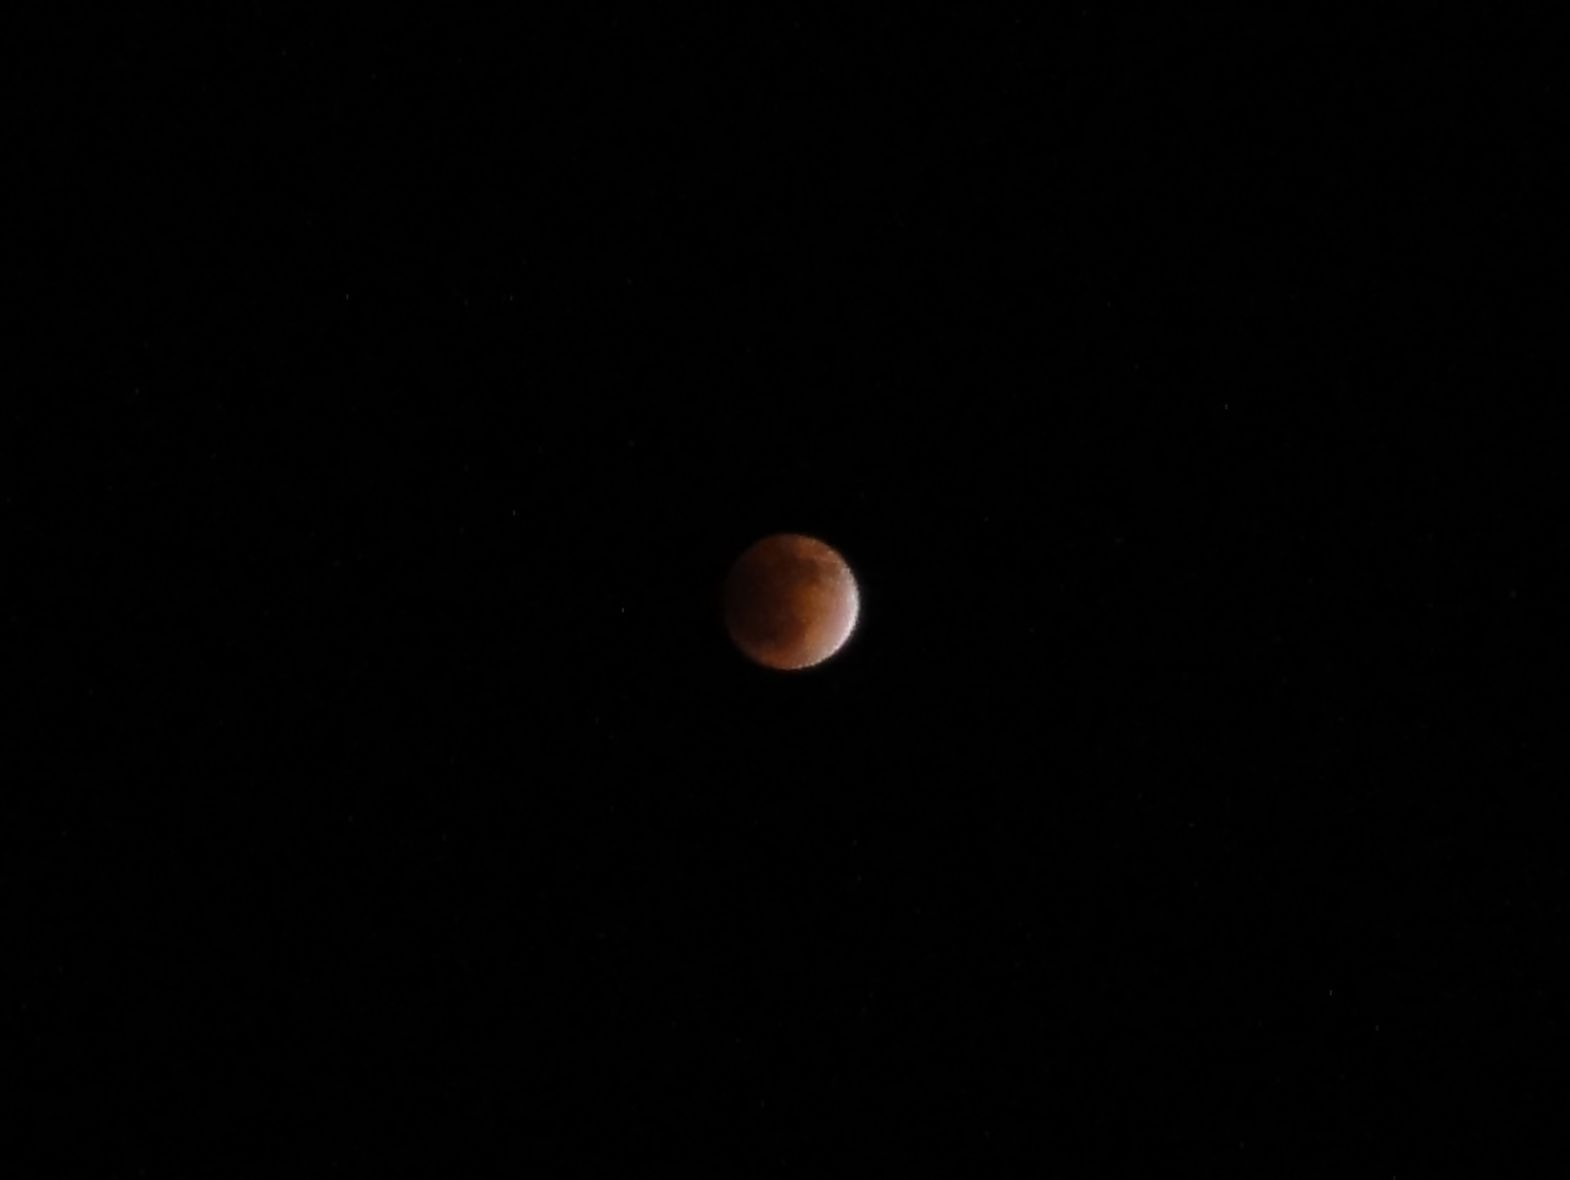 lunar_eclipse_133.jpg